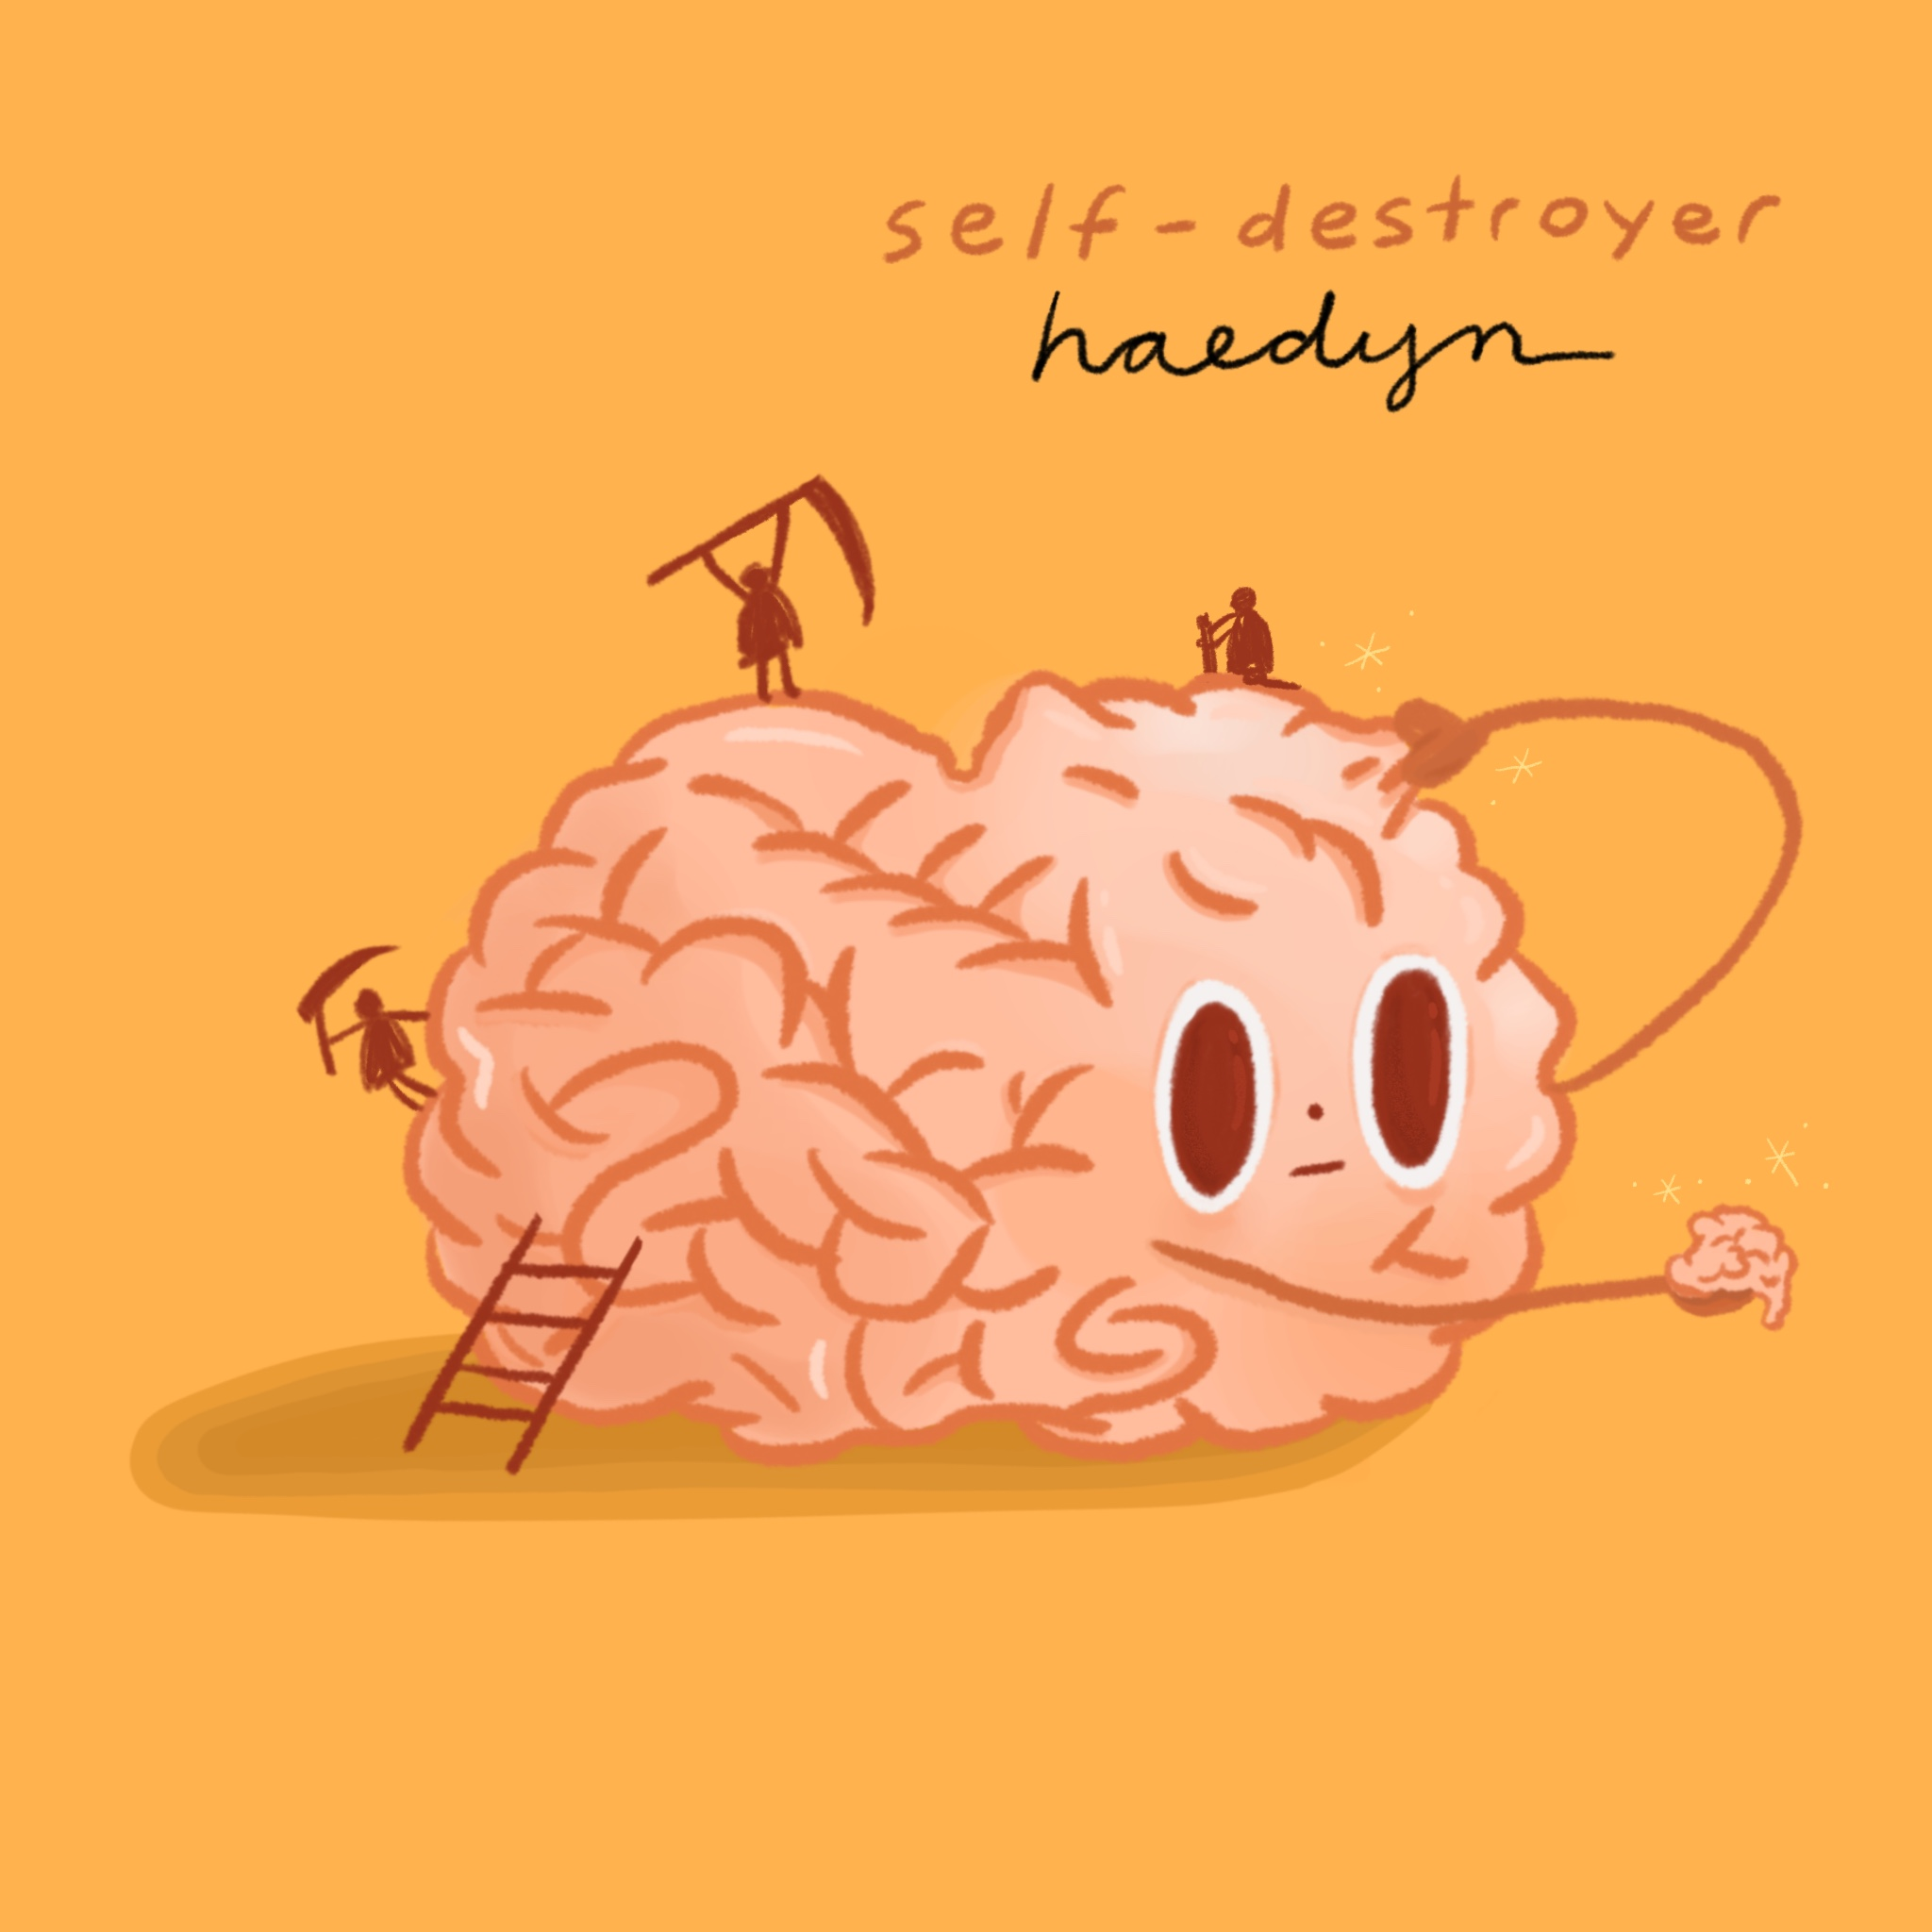 Self-Destroyer  cover art for  Haedyn.   Music and cover art available for viewing  here .